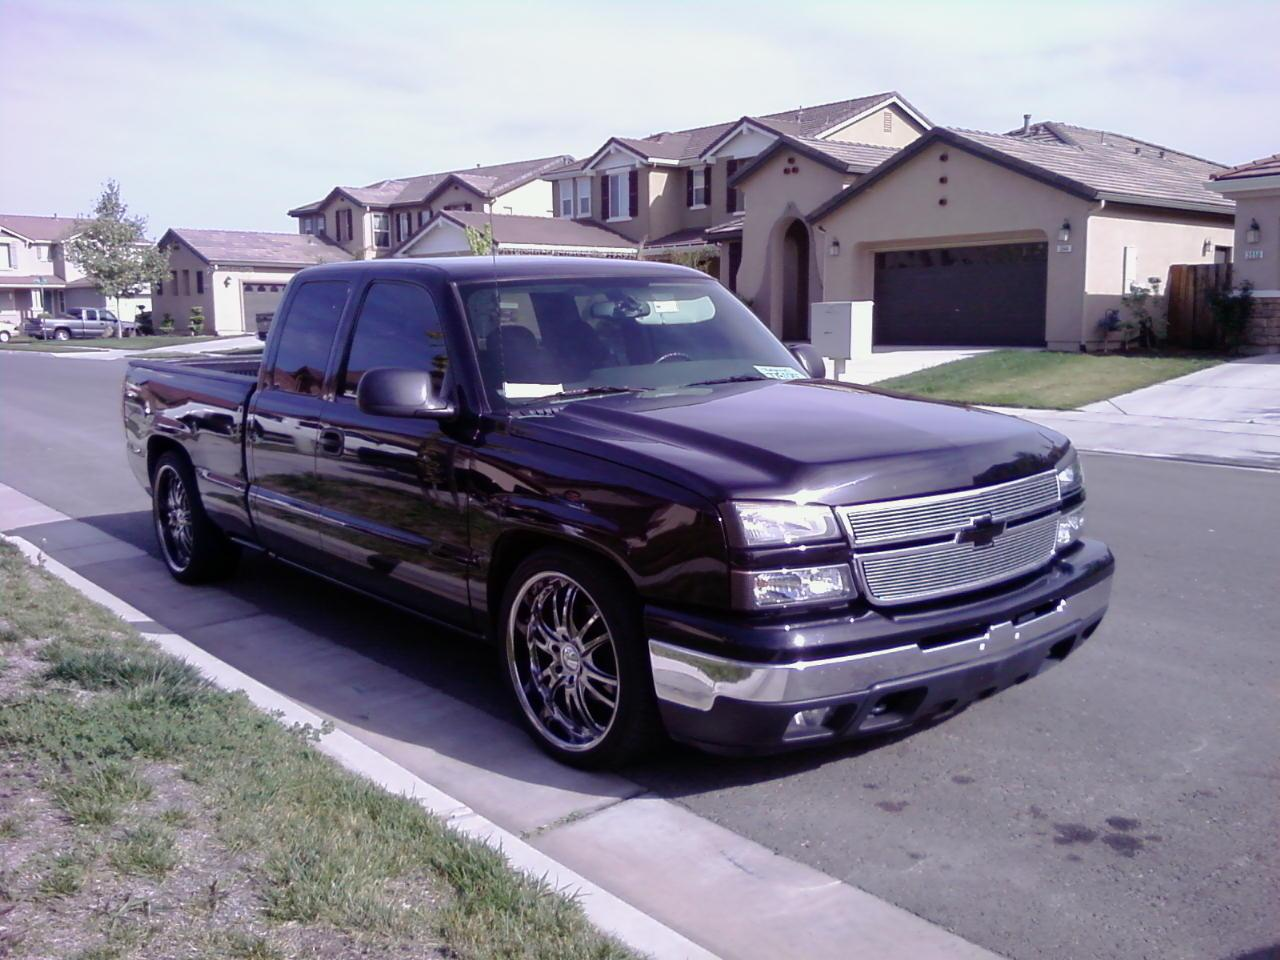 inkordie 2006 chevrolet silverado 1500 extended cab specs photos modification info at cardomain. Black Bedroom Furniture Sets. Home Design Ideas